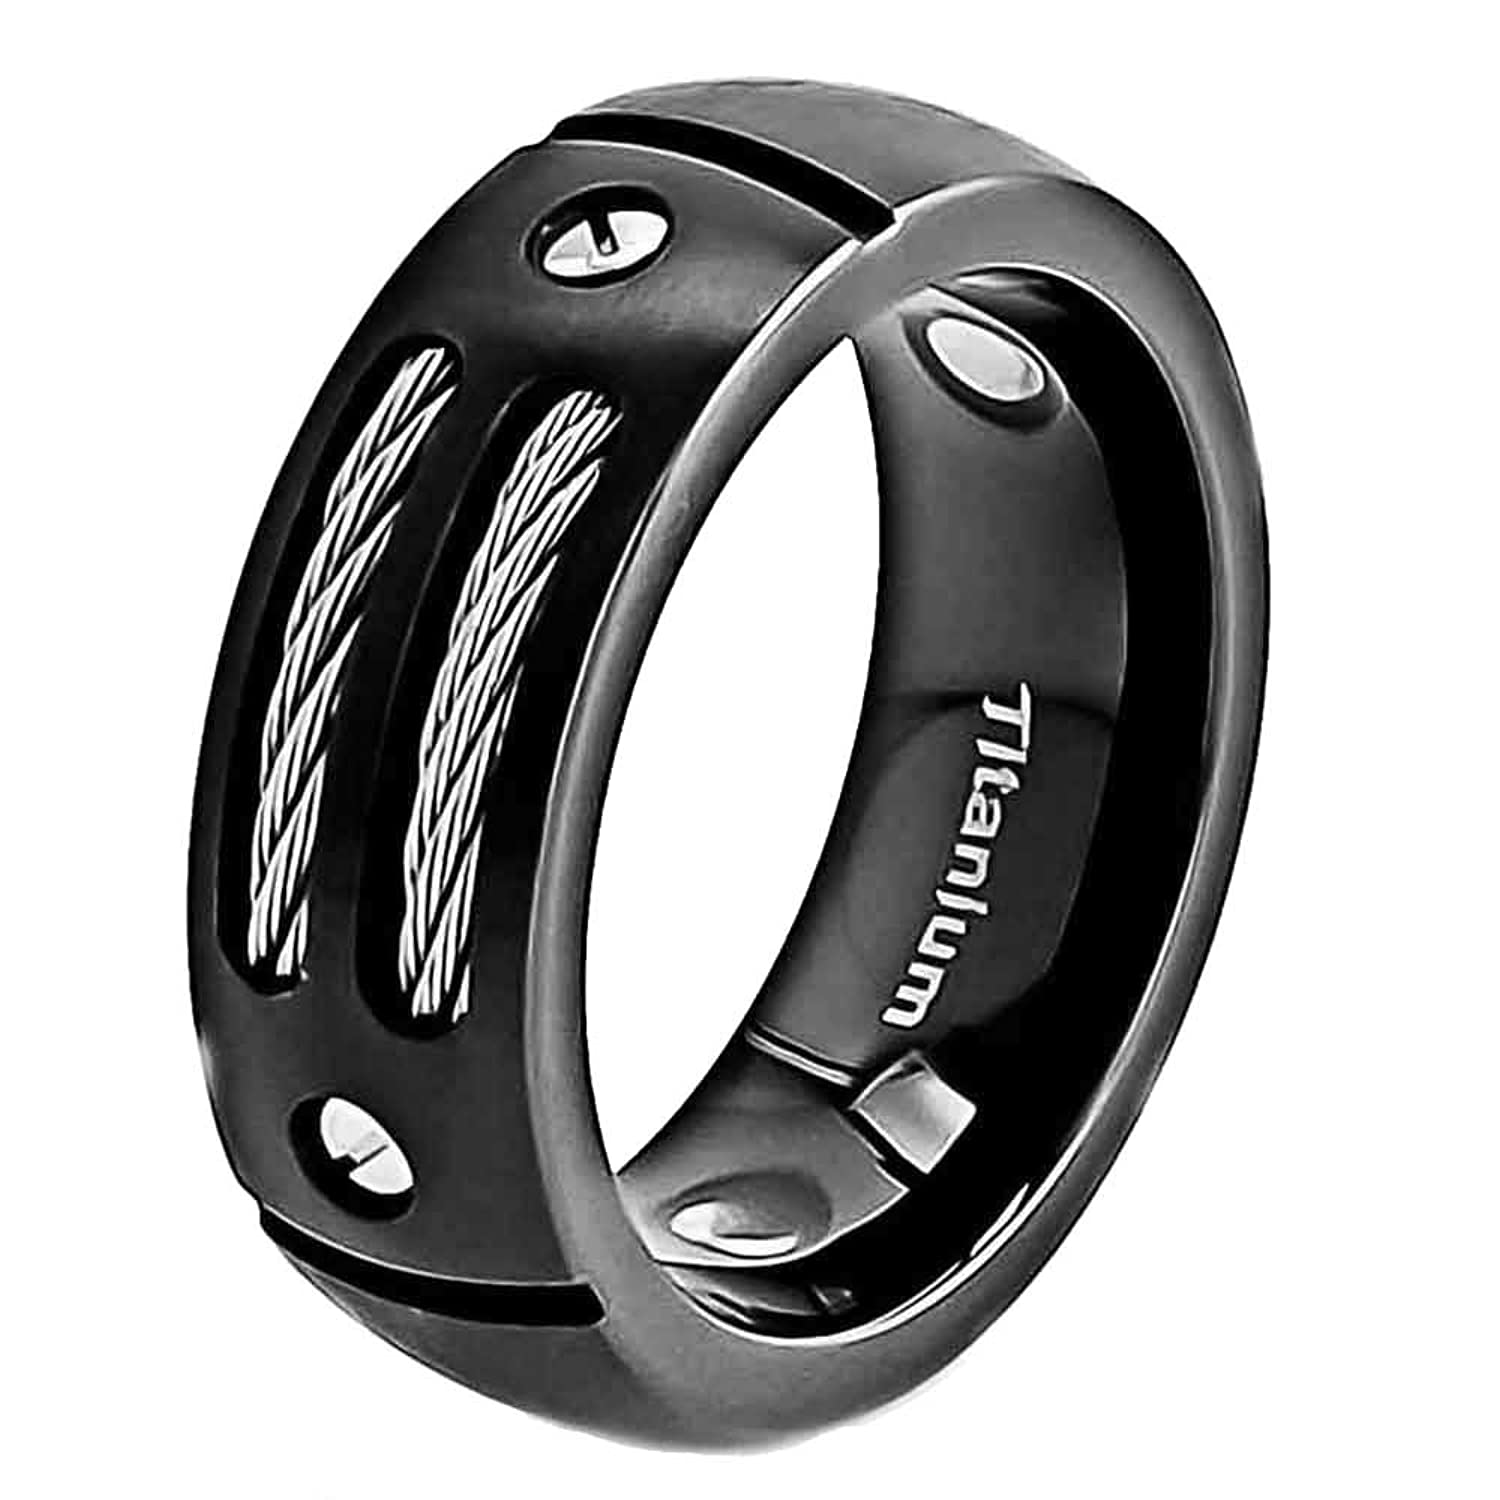 dp silver screw mens design black titanium stainless wedding band size spj com cables and steel bands men with amazon